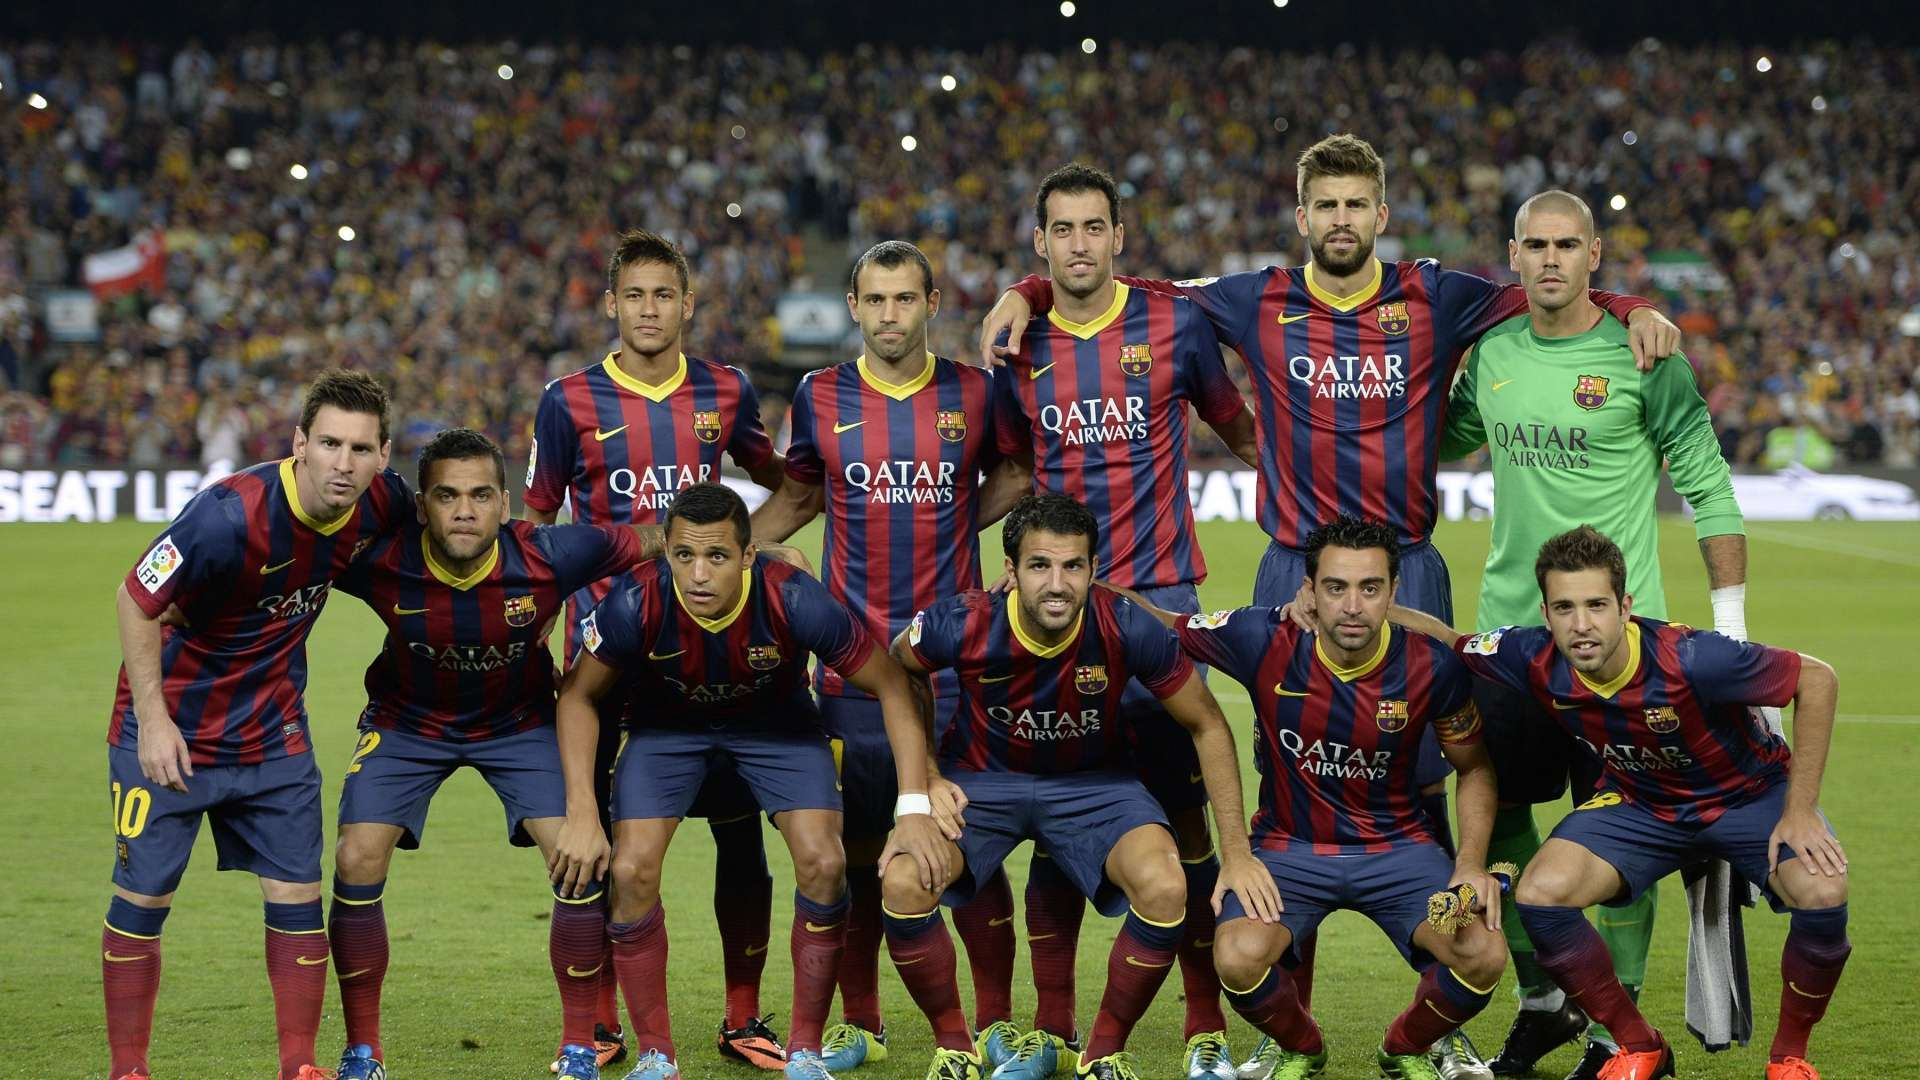 FC Barcelona Team High Definition Desktop Wallpapers 2014